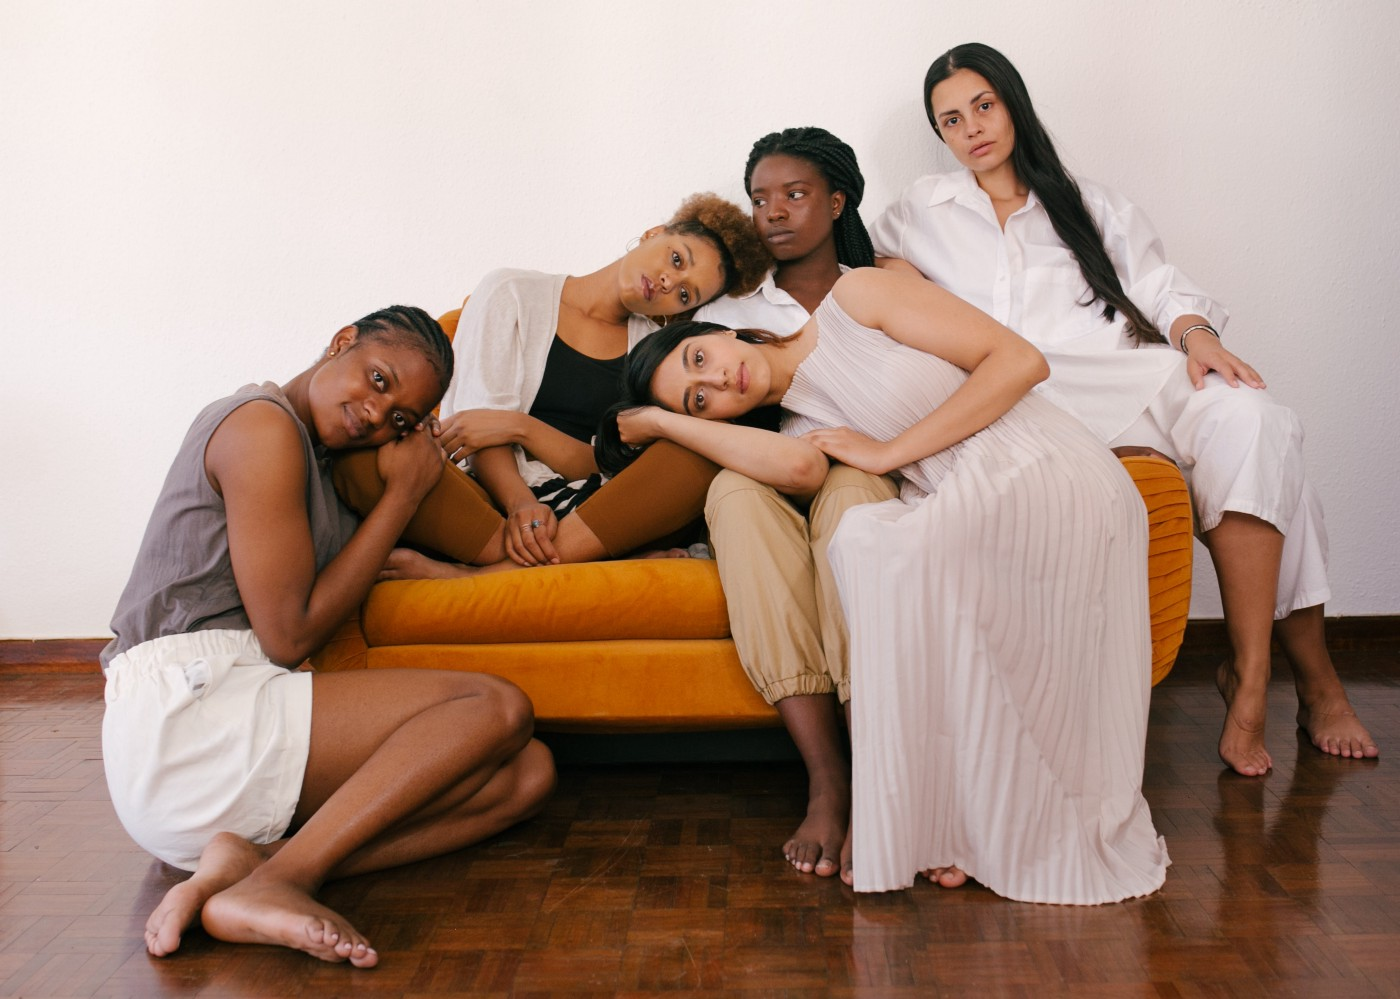 Five multiethnic women lounging on a couch